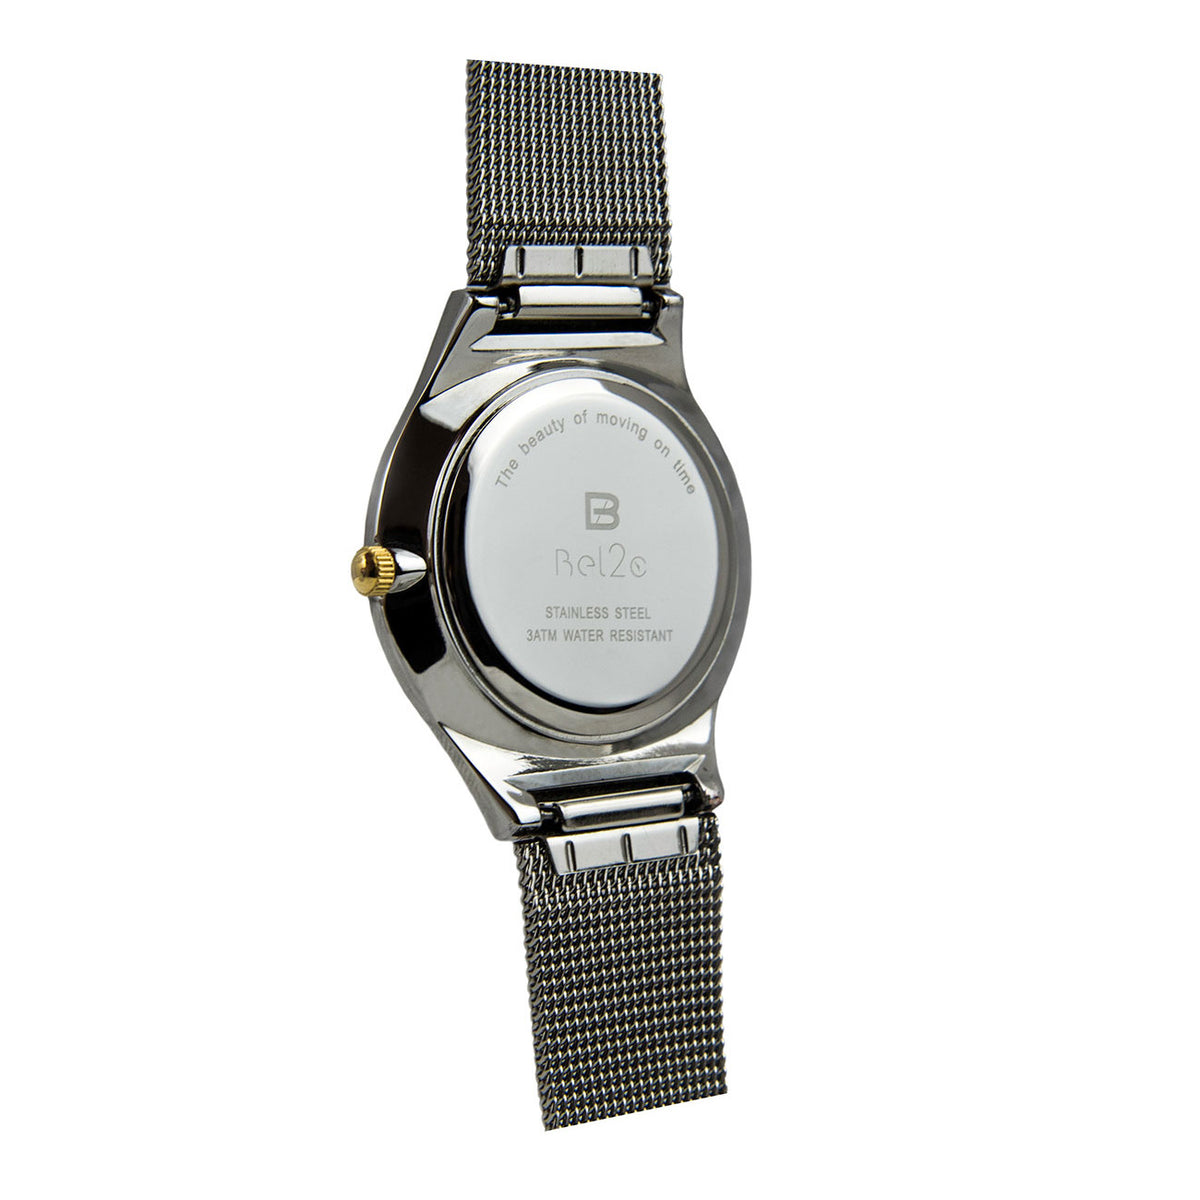 The back case of Bel2c Lagom unisex watch